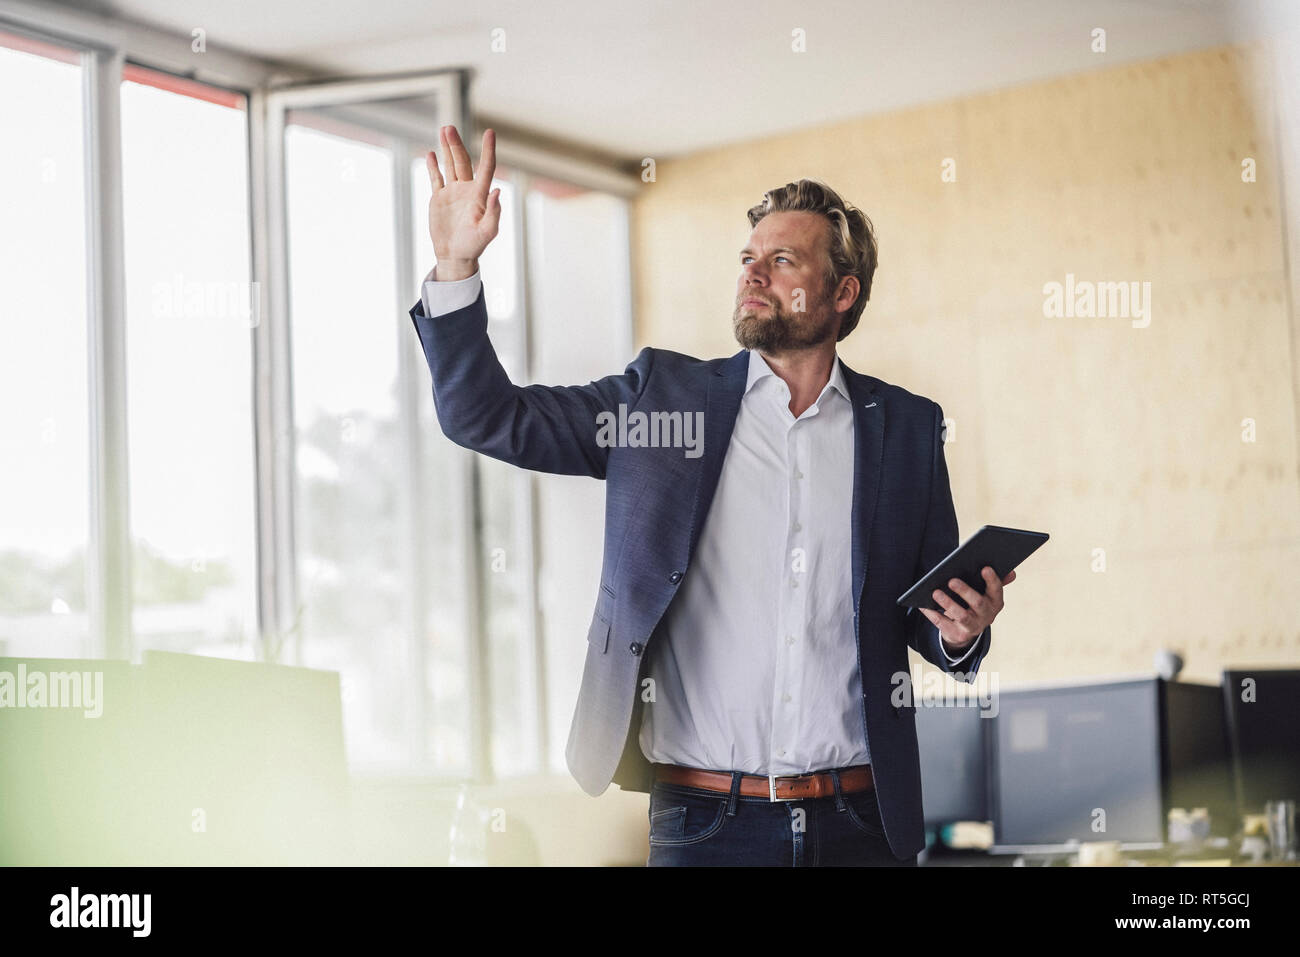 Businessman standing in office, holding digital talet, using his imagination - Stock Image